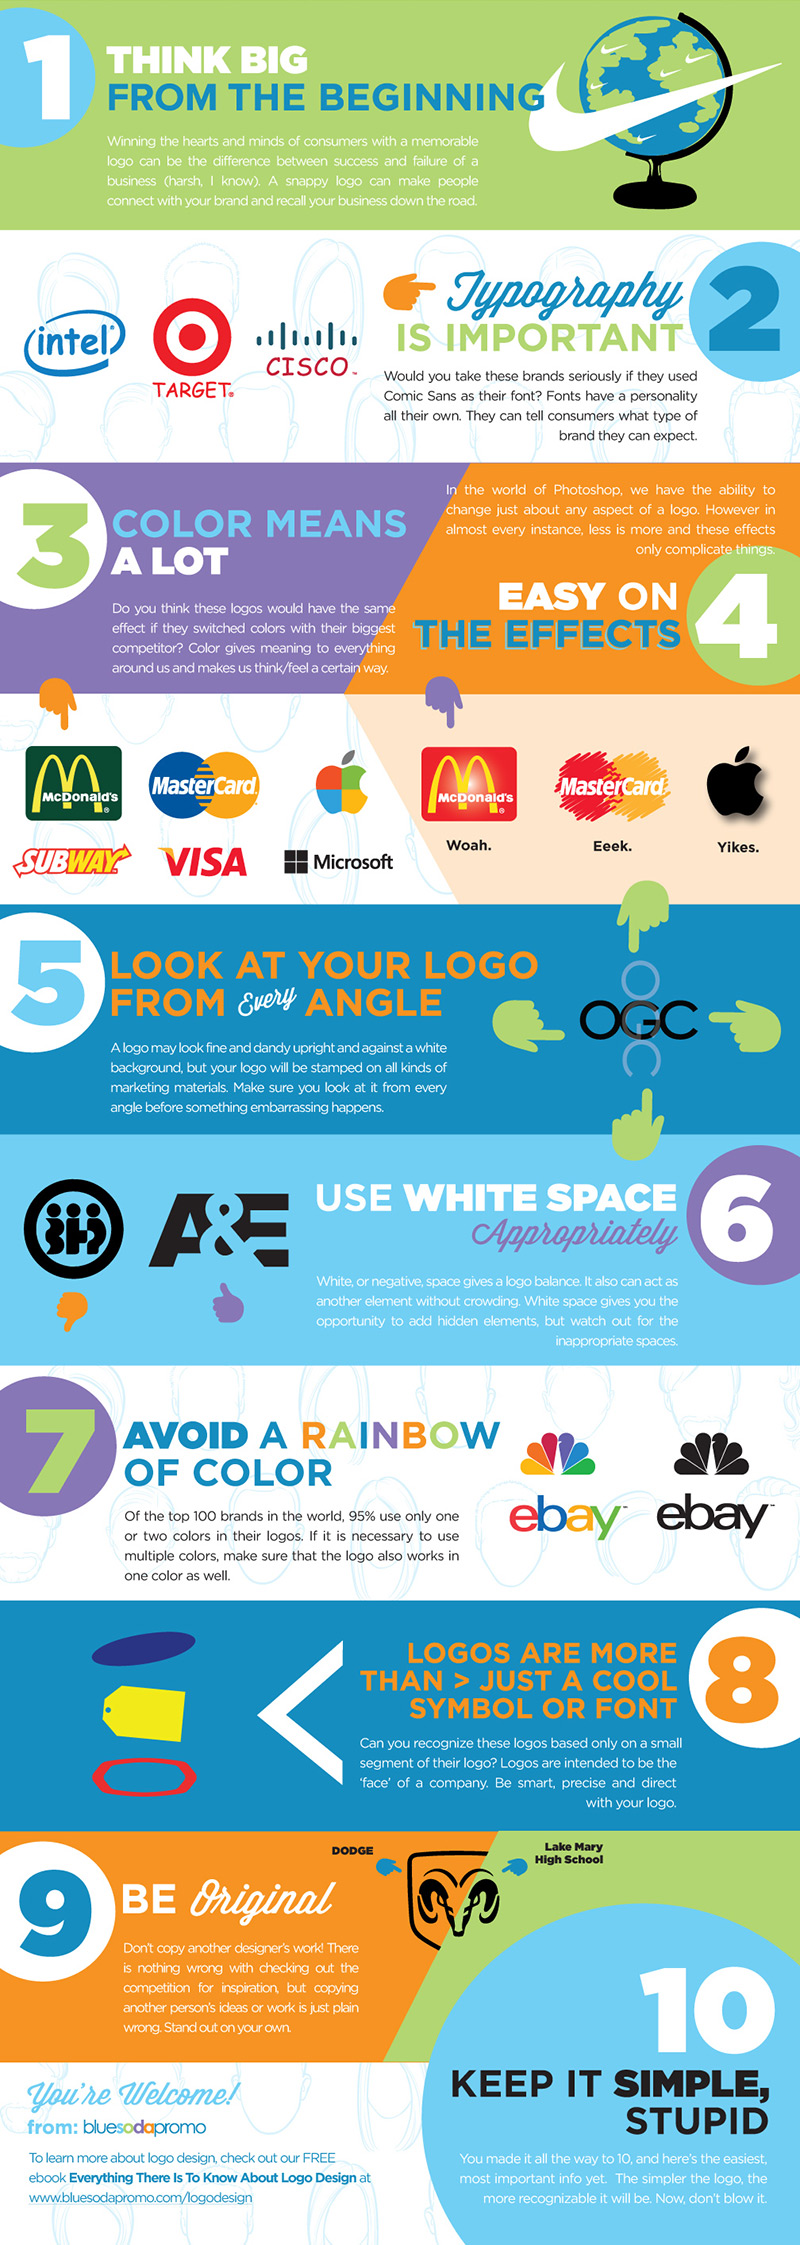 10-things-logo-design